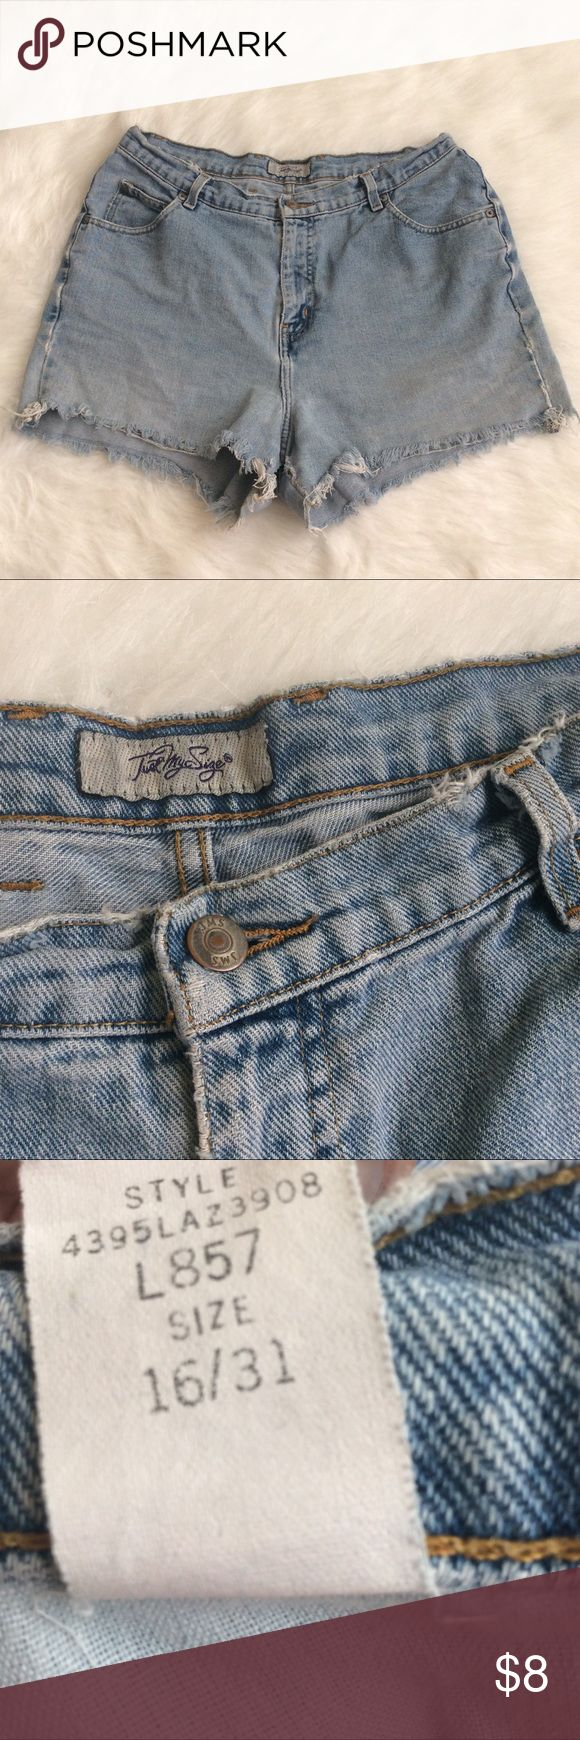 """Just My Size Vintage Cutoffs Pre-owned condition. Light wash and high waist. Size 16 (older sizes run different) so these fit more like a 12-14. 100% cotton and no stretch. Measurements: 16.5"""" waist, 13"""" rise, 3"""" inseam. Wear and tear along the inseam that can probably be fixed. Just My Size Shorts Jean Shorts"""